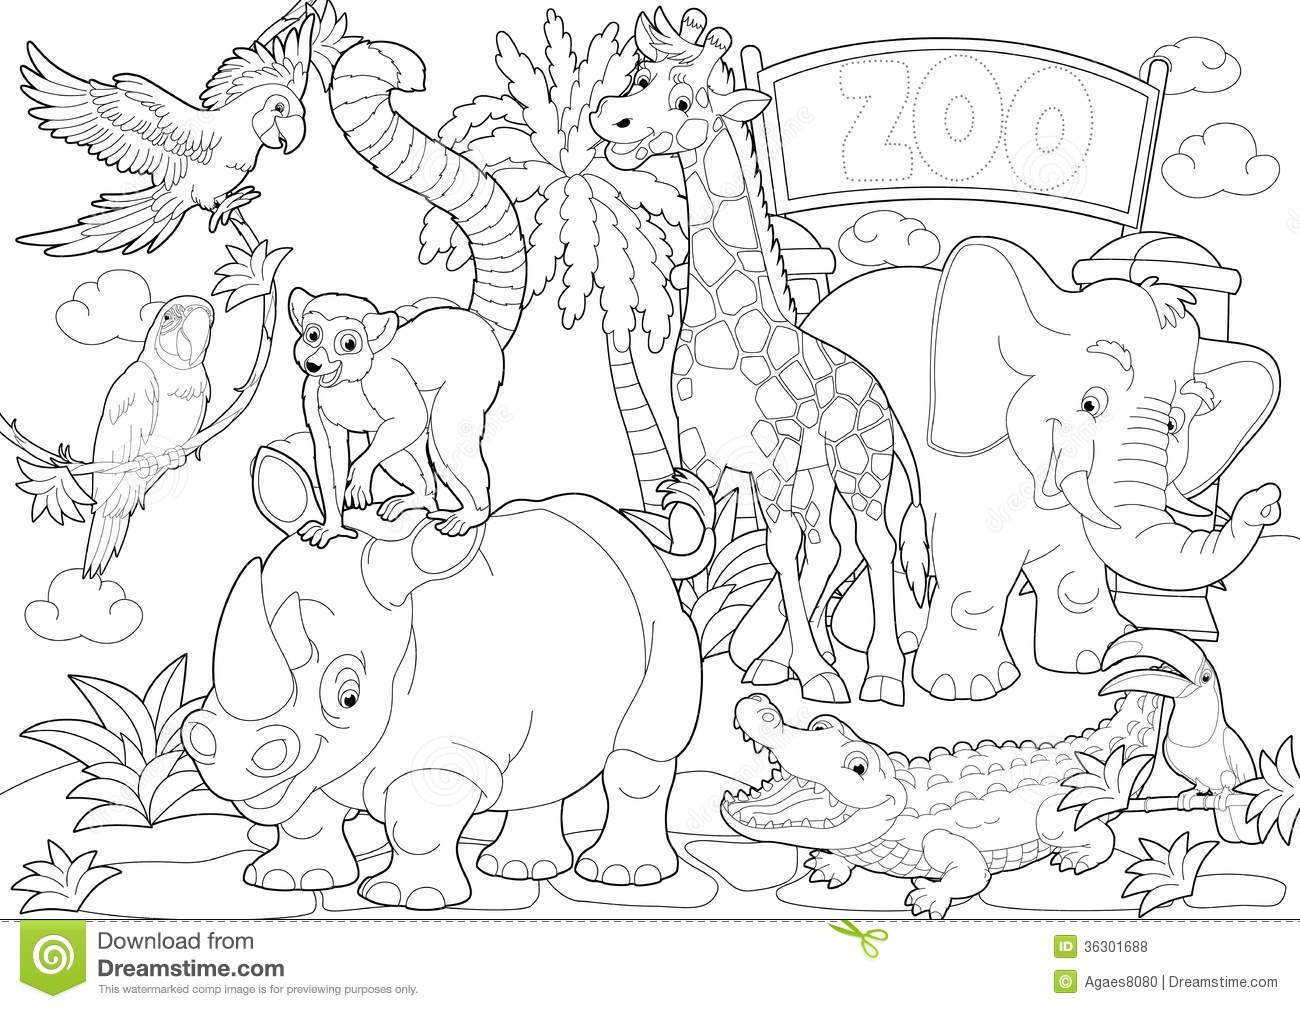 Coloring Page The Zoo Illustration For The Children Royalty Clip